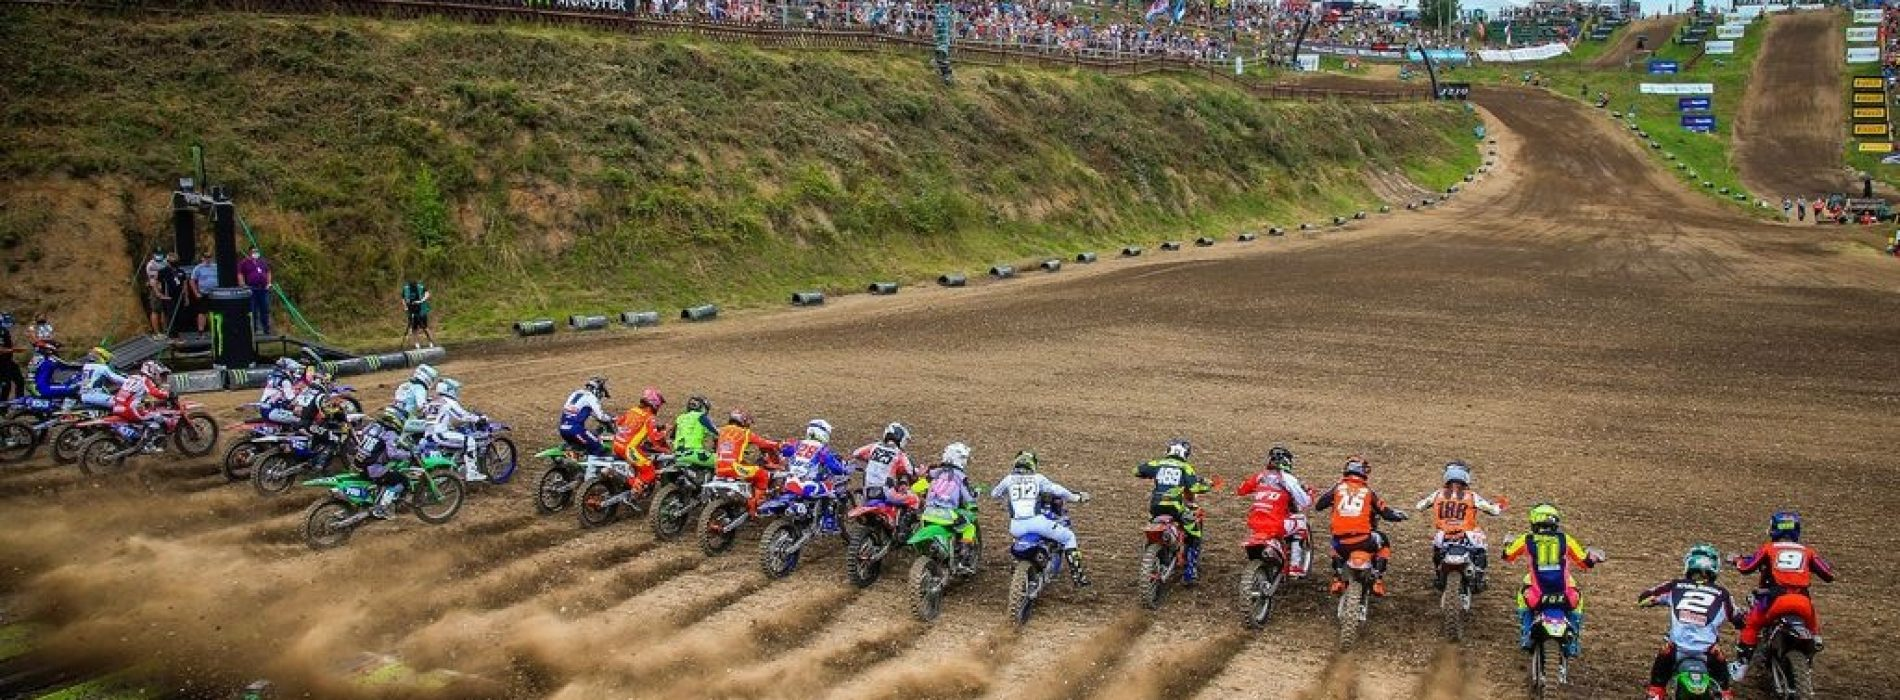 Women Motocross World Championship heads to Lommel Round 2- what to expect